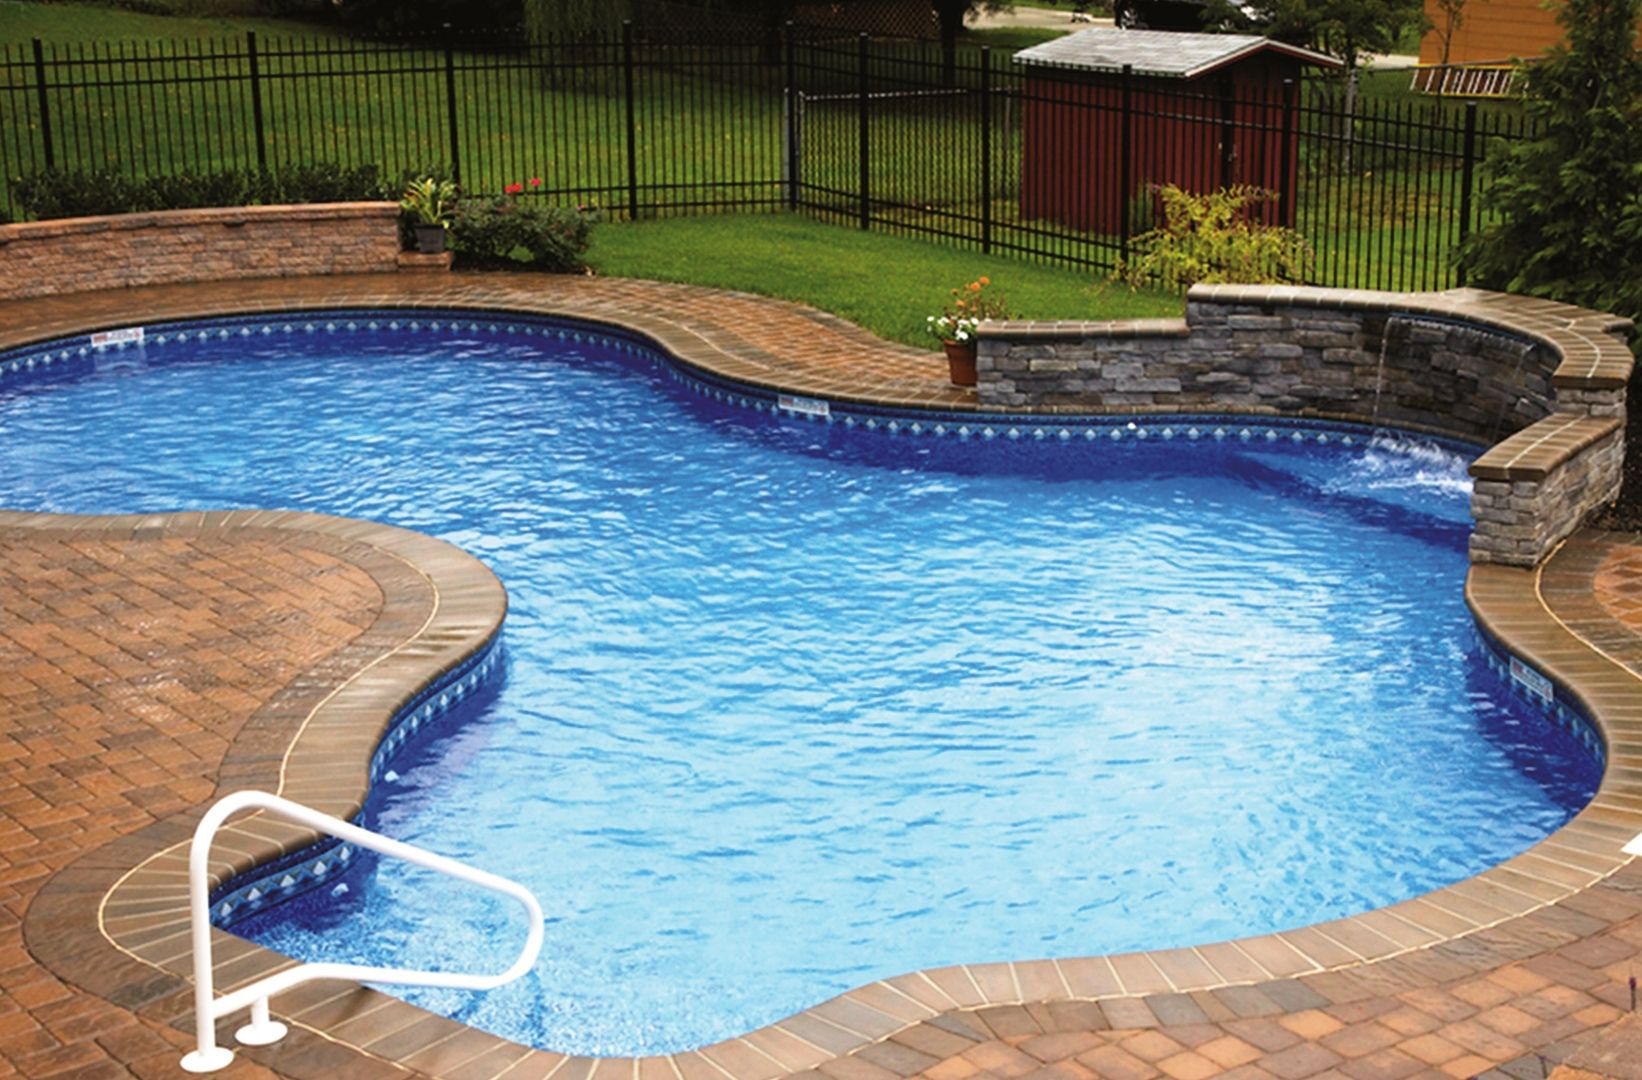 Back yard swimming pool ideas swimming pool design for Garden pool designs